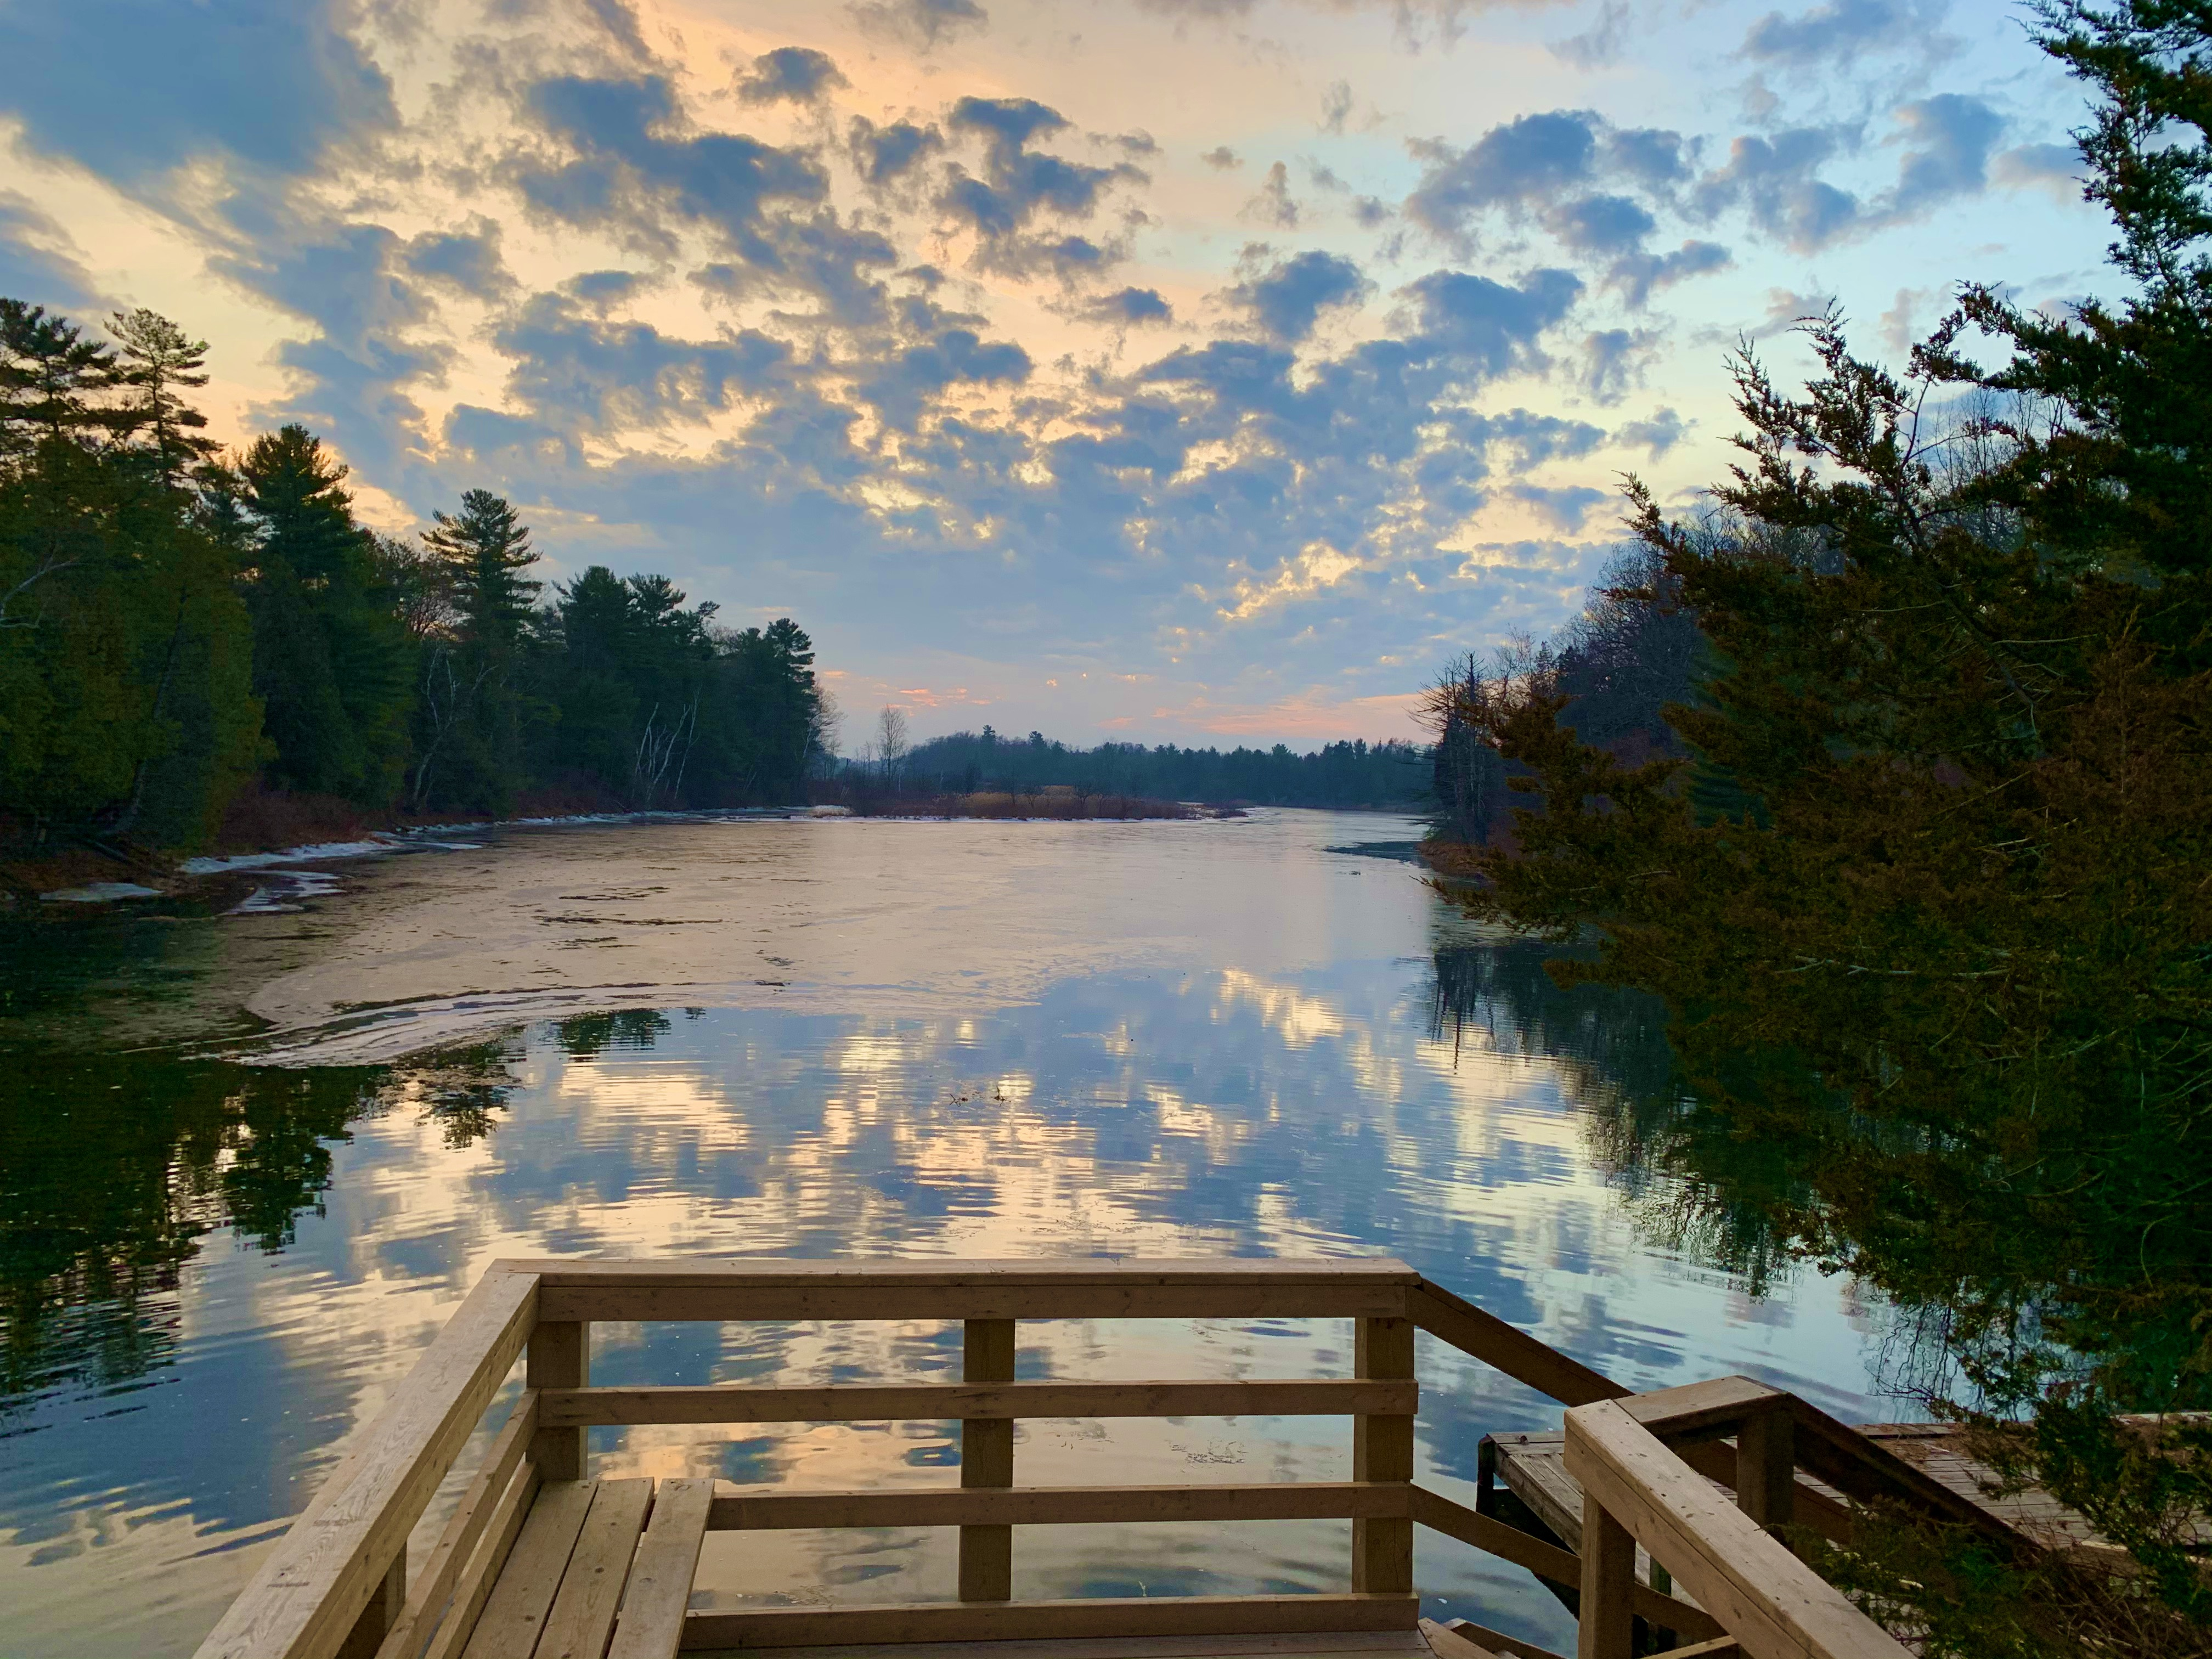 dramatic clouds reflected in still water by a dock